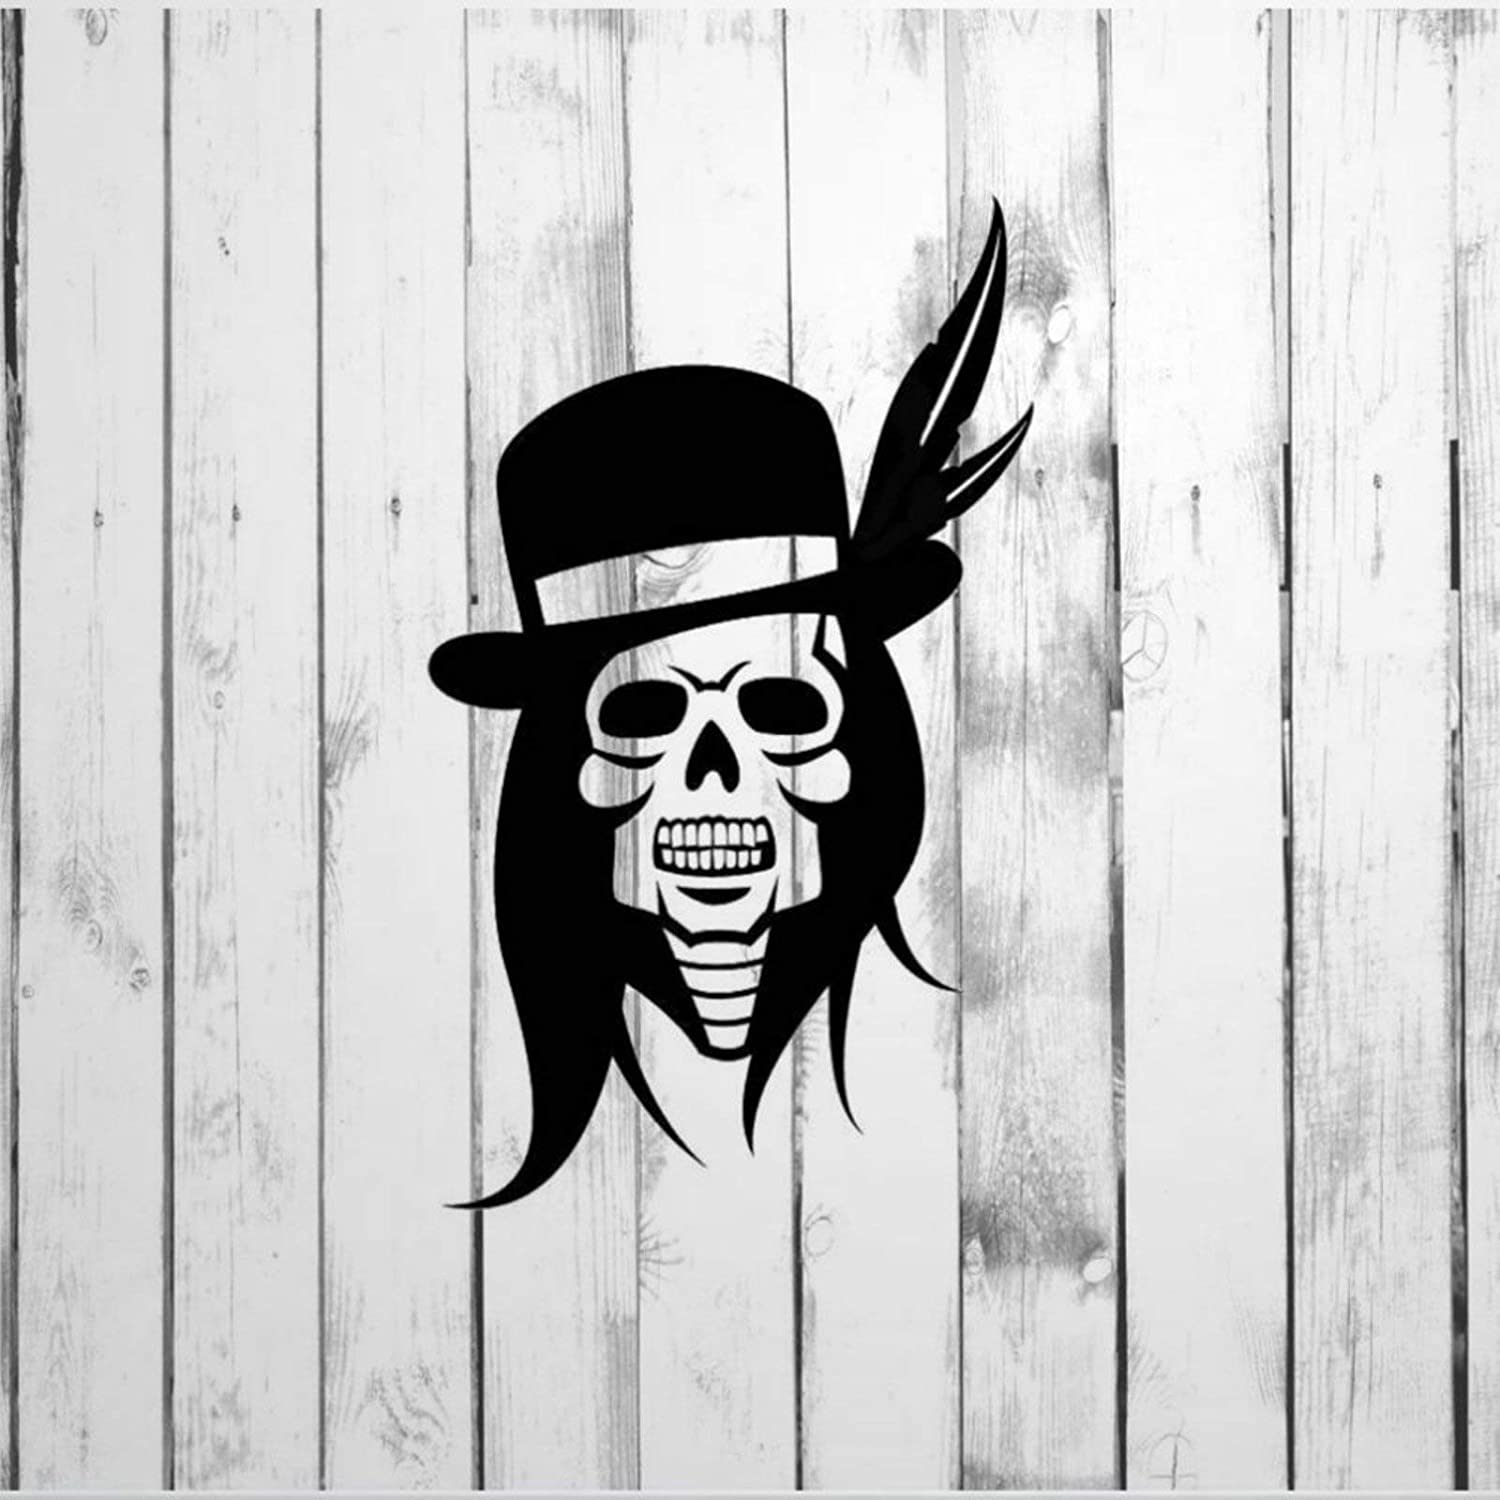 DONL9BAUER Decal, Skeleton Skull with Top Hat, Feathers, Long Hair Car Stickers Vinyl Auto Scratch Cover Car Decal for Home Truck Computer Laptop Travel Case Tumbler Door Window Bumper Decor